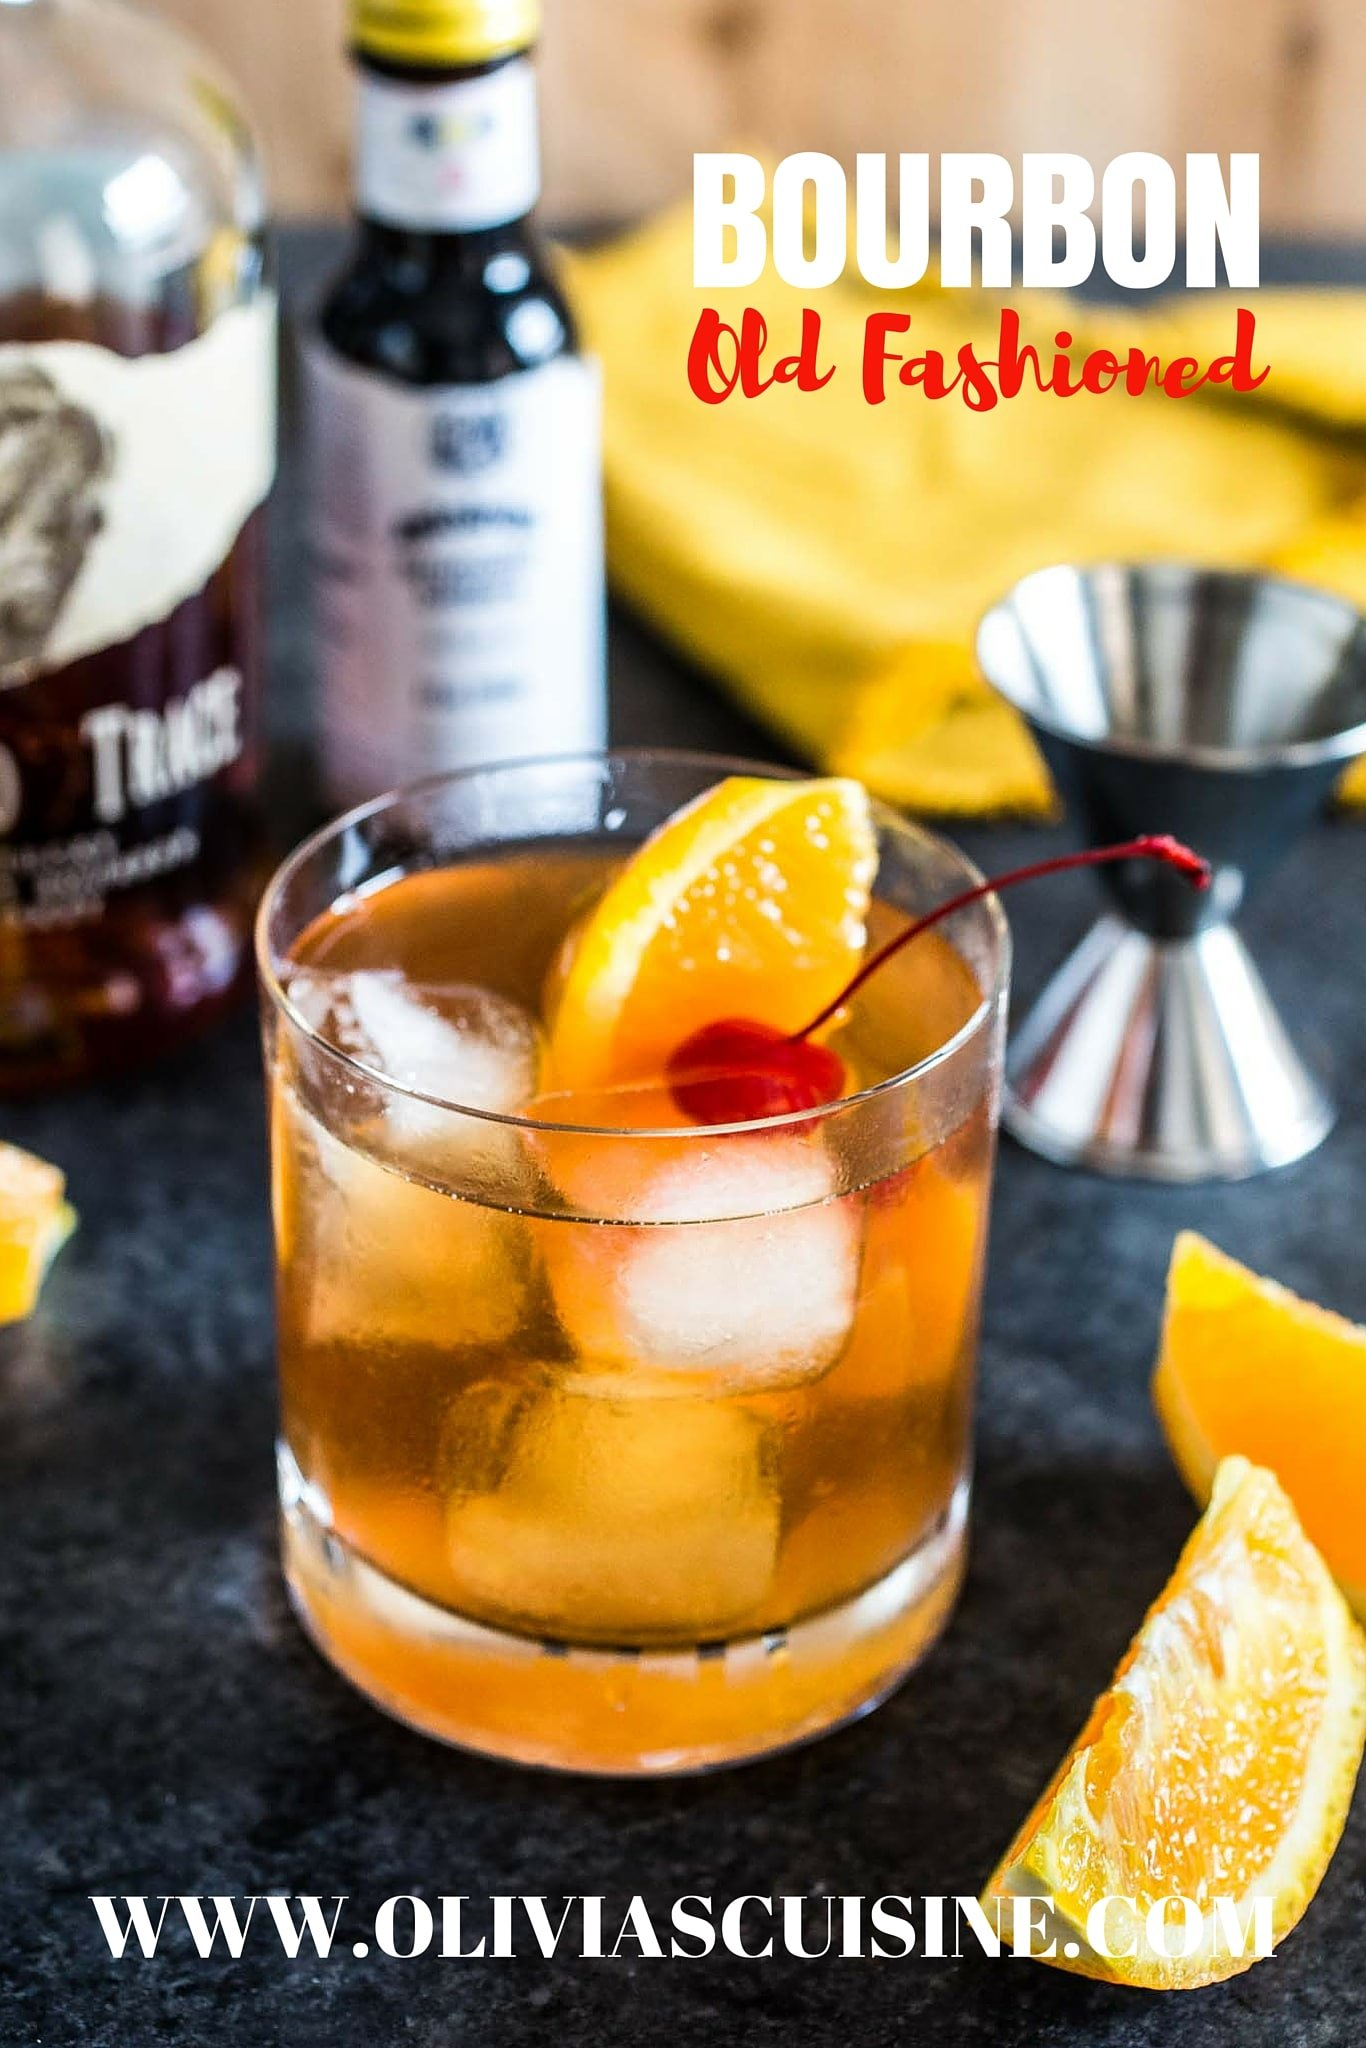 Bourbon Old Fashioned Www Oliviascuisine A Clic Tail Made With